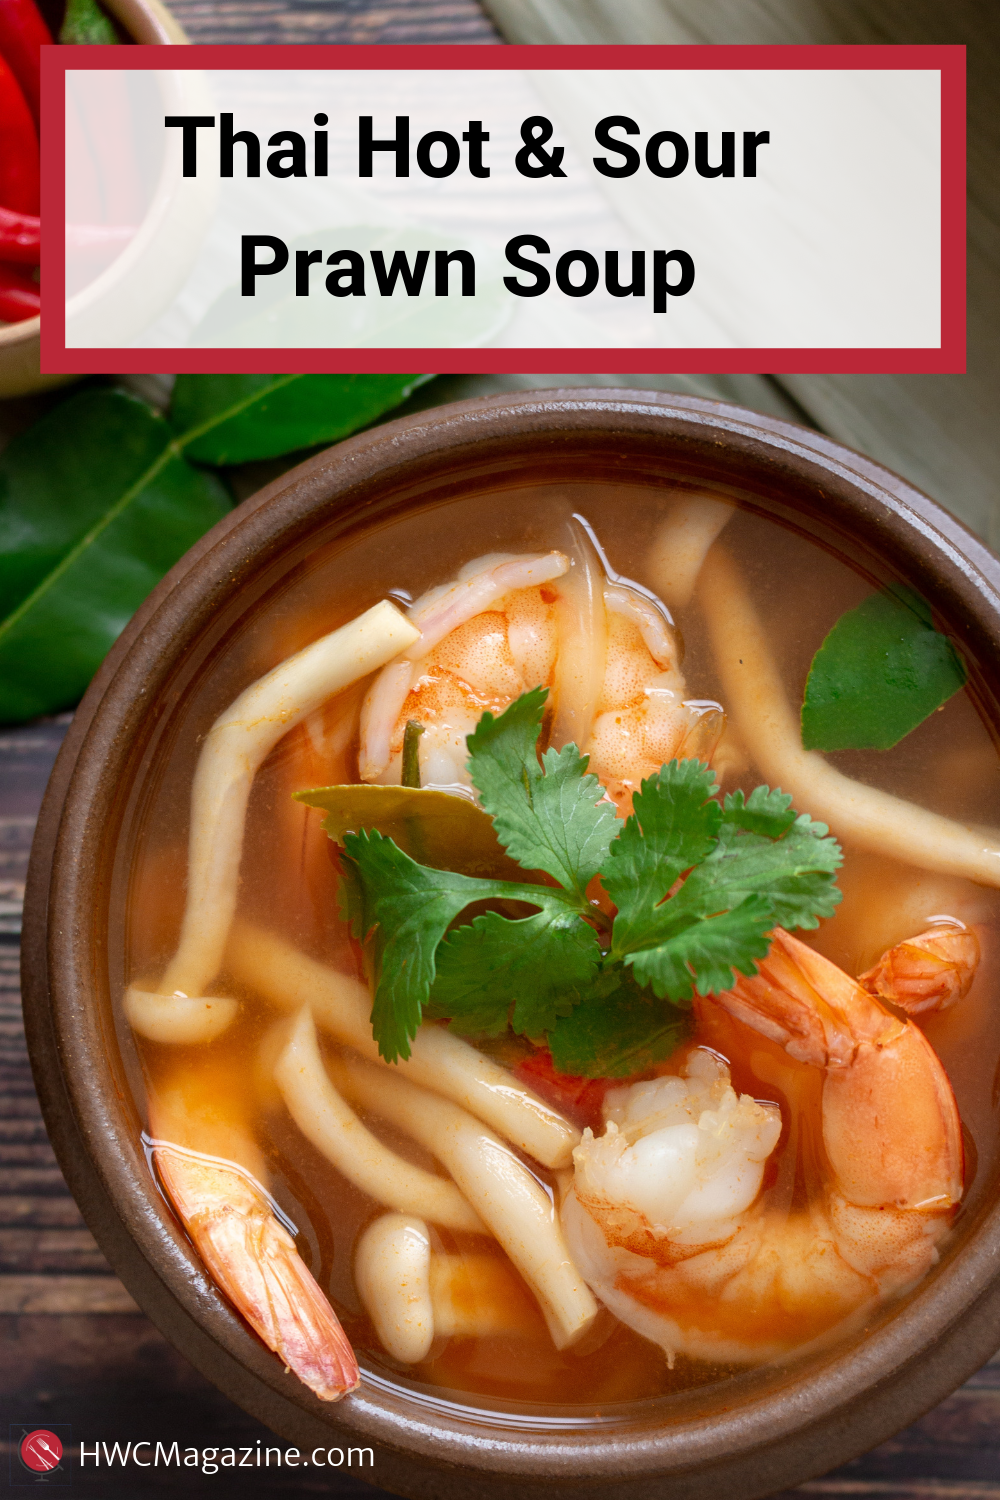 Thai Hot and Sour Prawn Soup also known as Tom Yum Goong is a fragrant, spicy and sour soup flavor explosion made with authentic Thai ingredients. #thai #asian #easyrecipe #soup #healthyrecipe #healthyeating #spicy / https://www.hwcmagazine.com